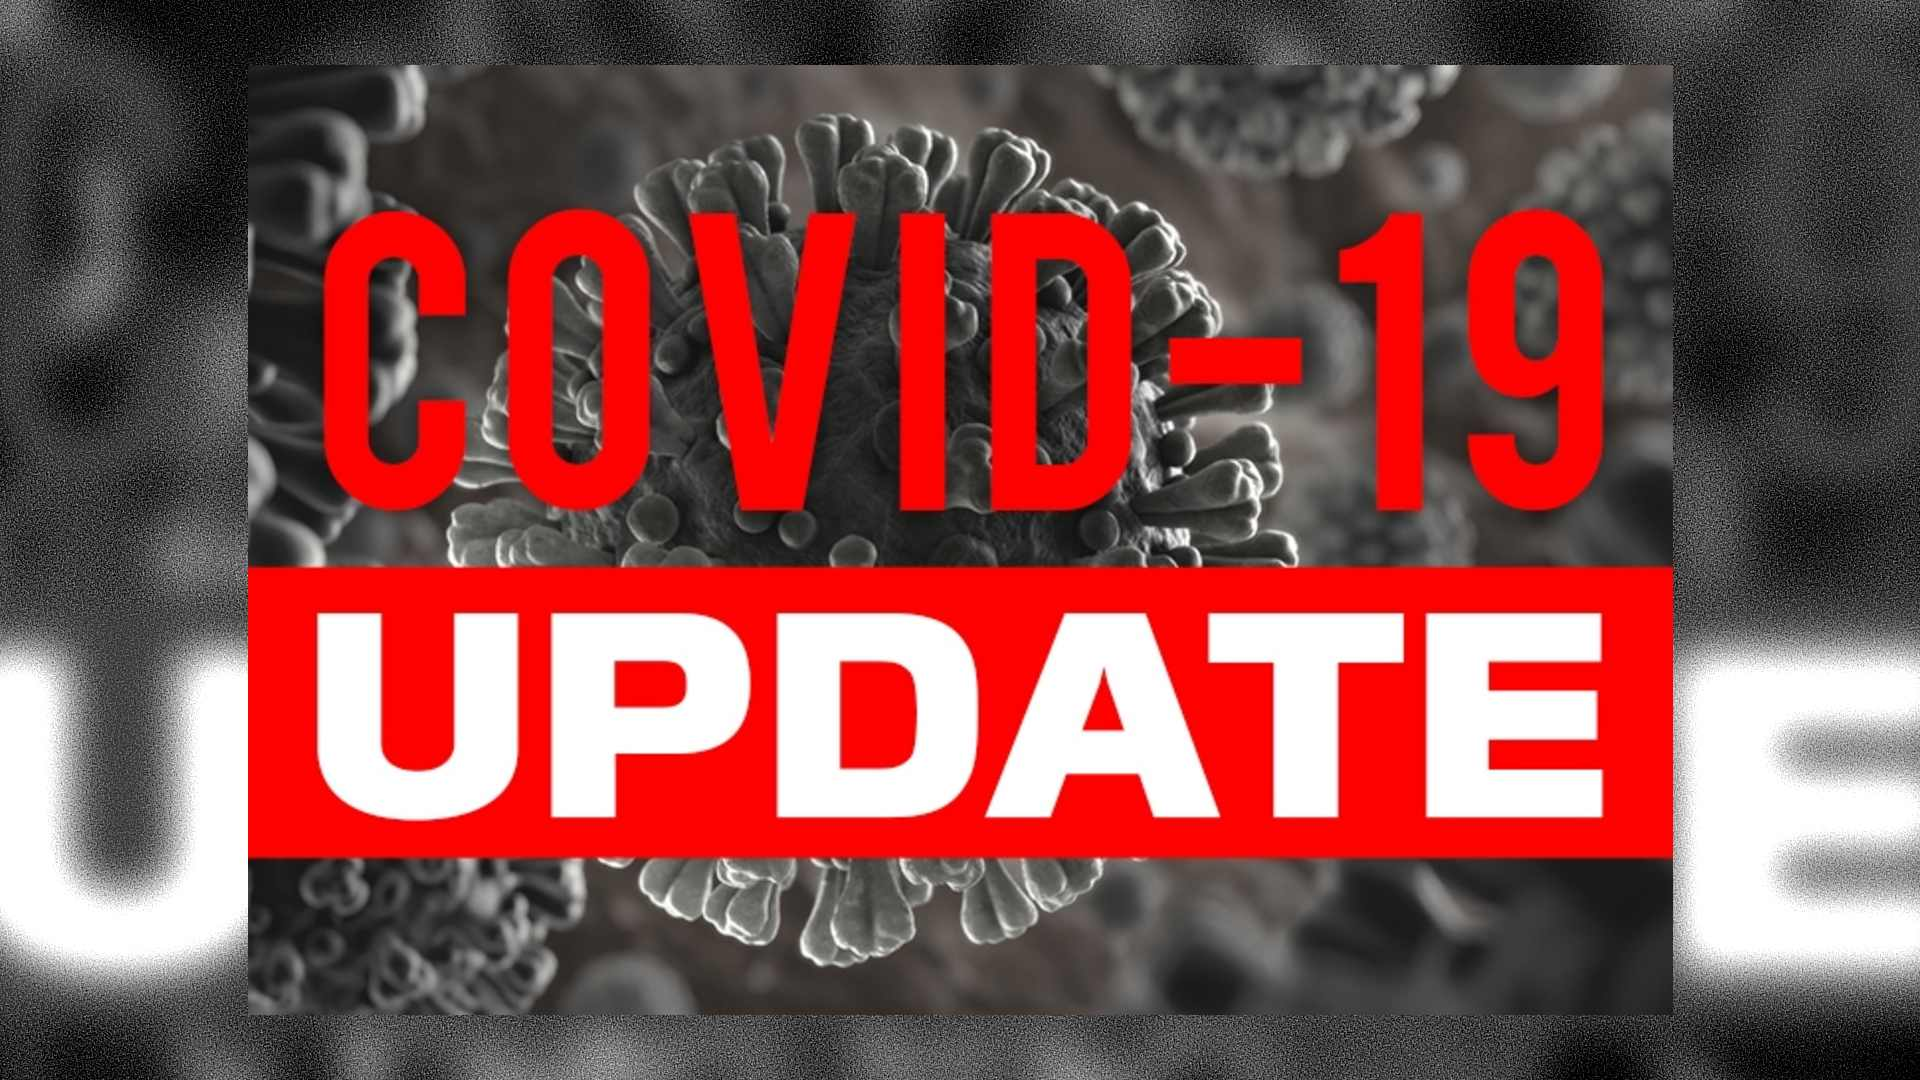 44 new COVID-19 cases reported in Sri Lanka on Monday